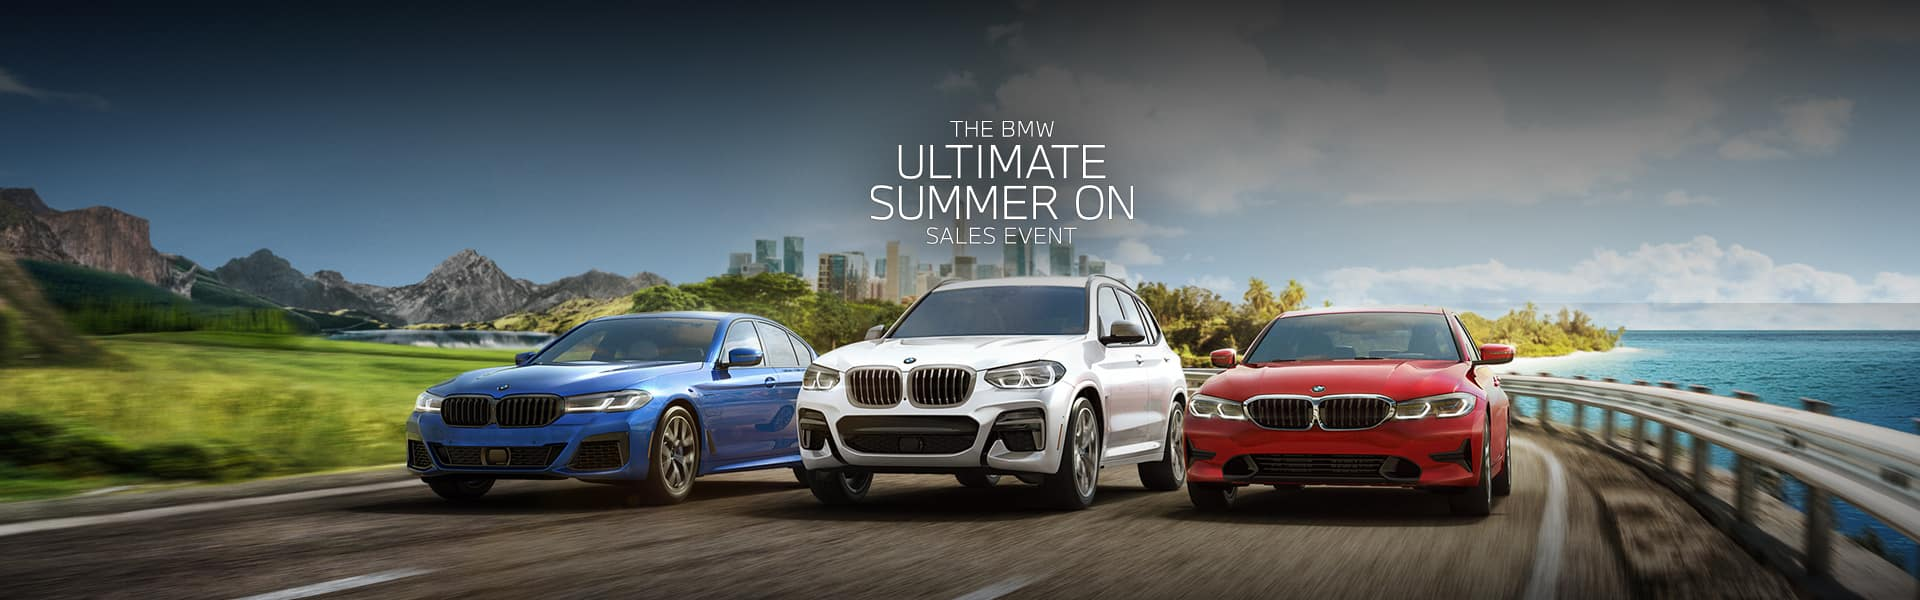 The BMW Store Ultimate Summer On Saves Event Test Drive